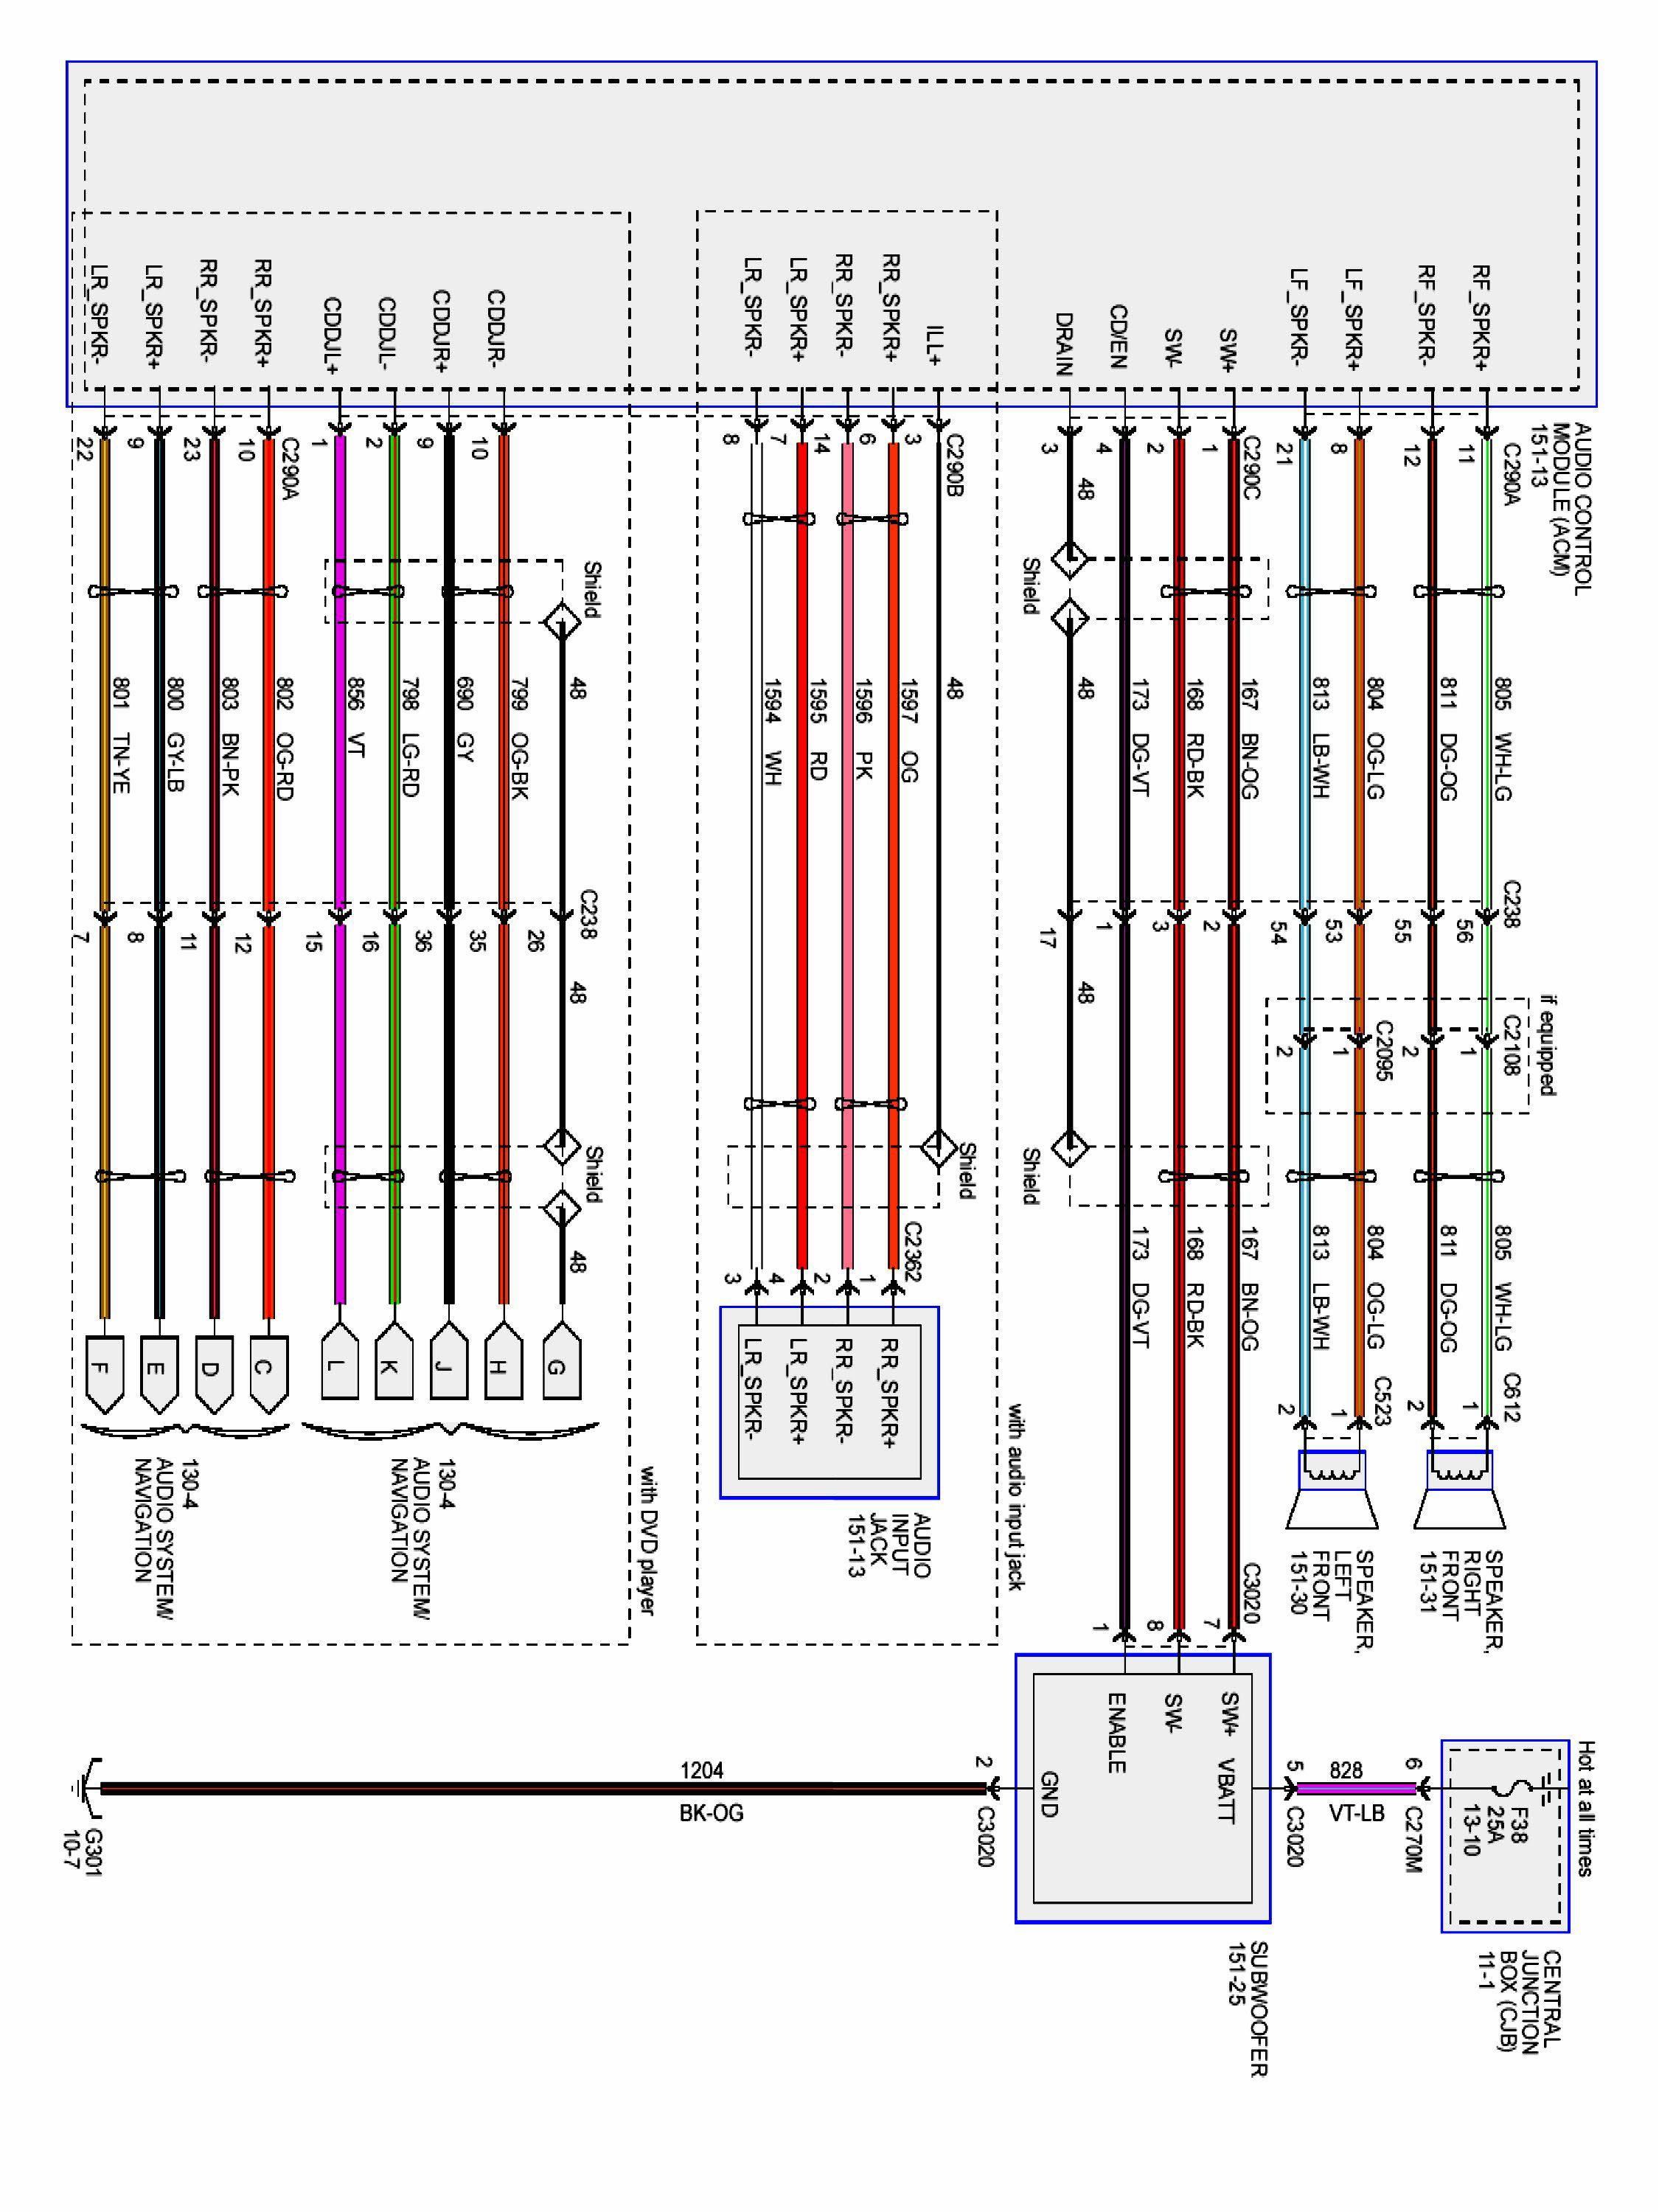 2004 ford f 250 stereo wiring diagram wiring diagram expert 2004 ford focus radio wiring diagram 04 f250 radio wiring diagram